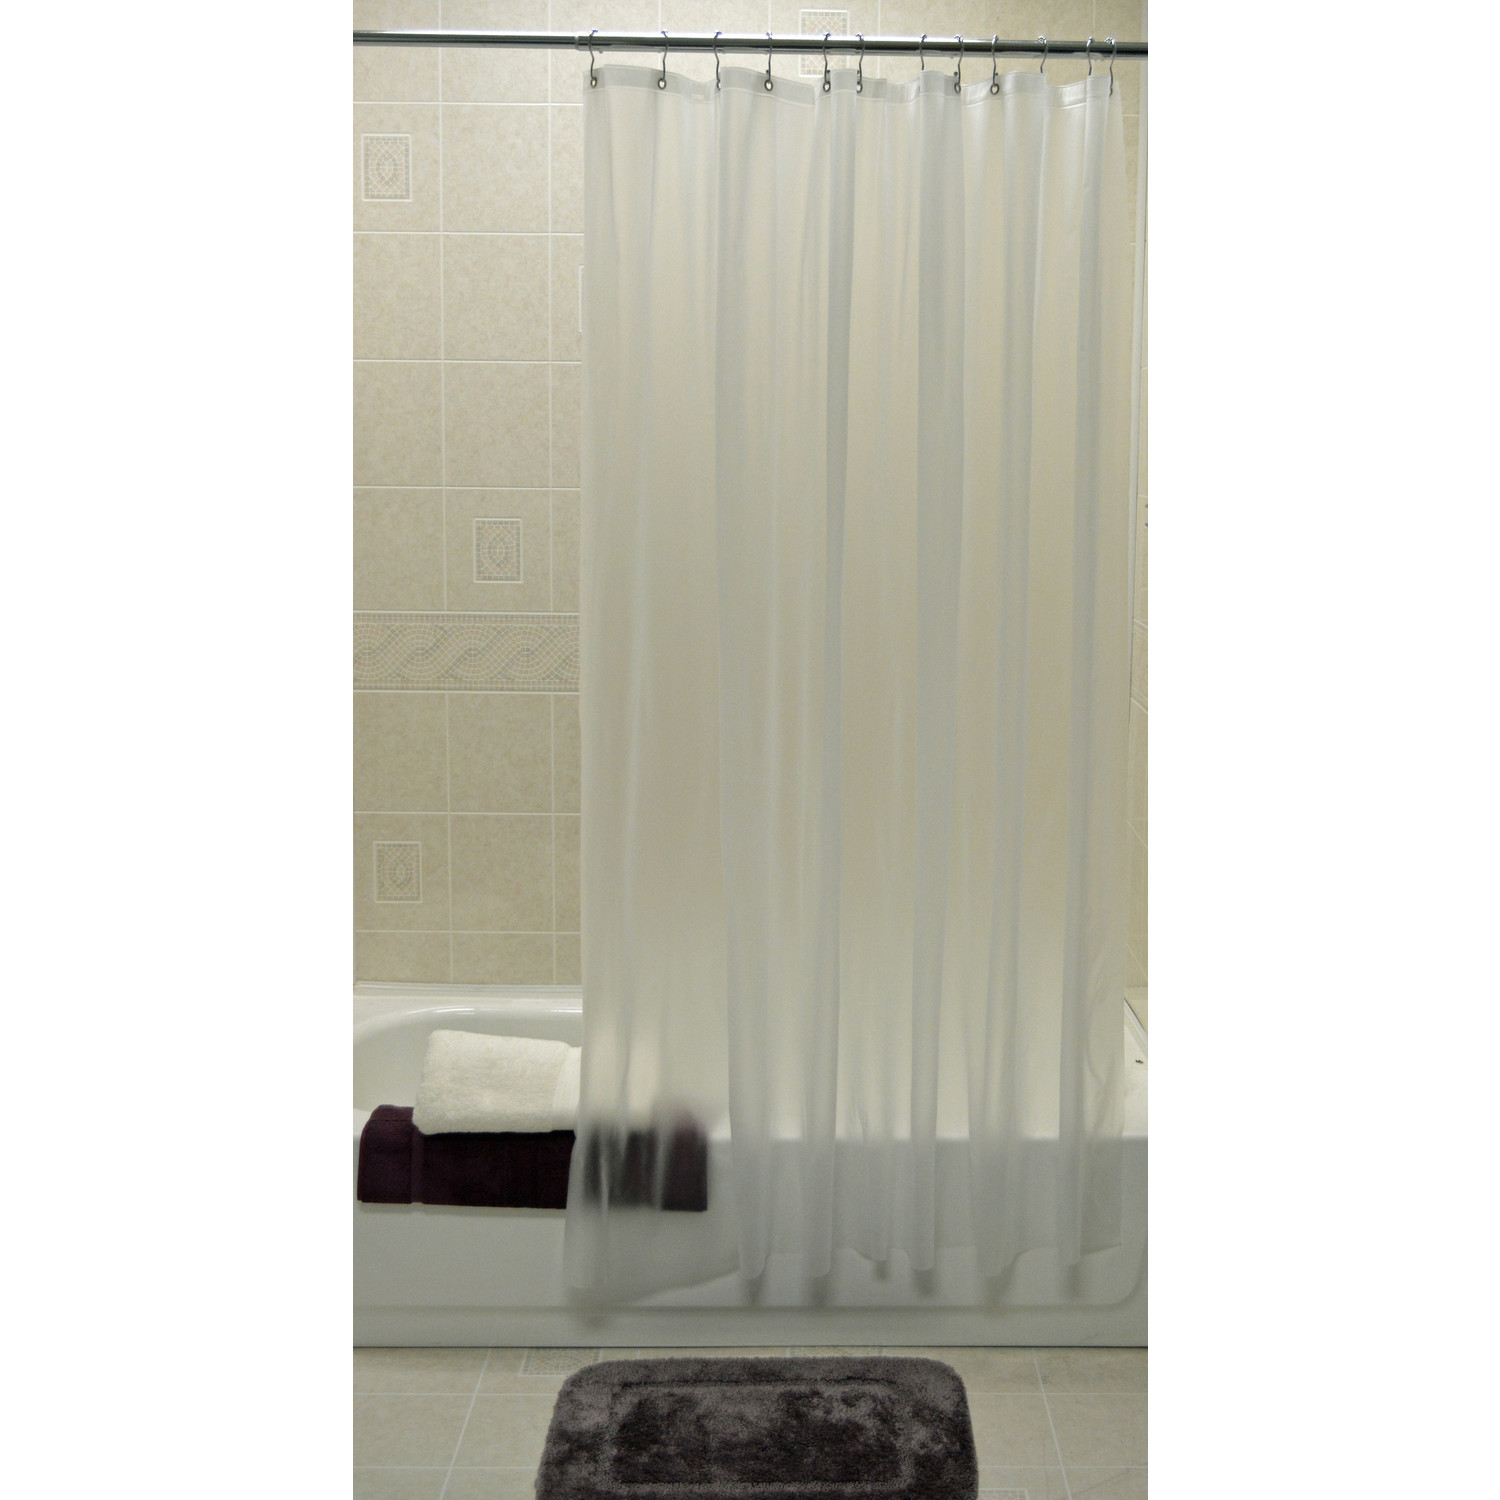 kartri shower curtain liner p free frosty 72 x 78